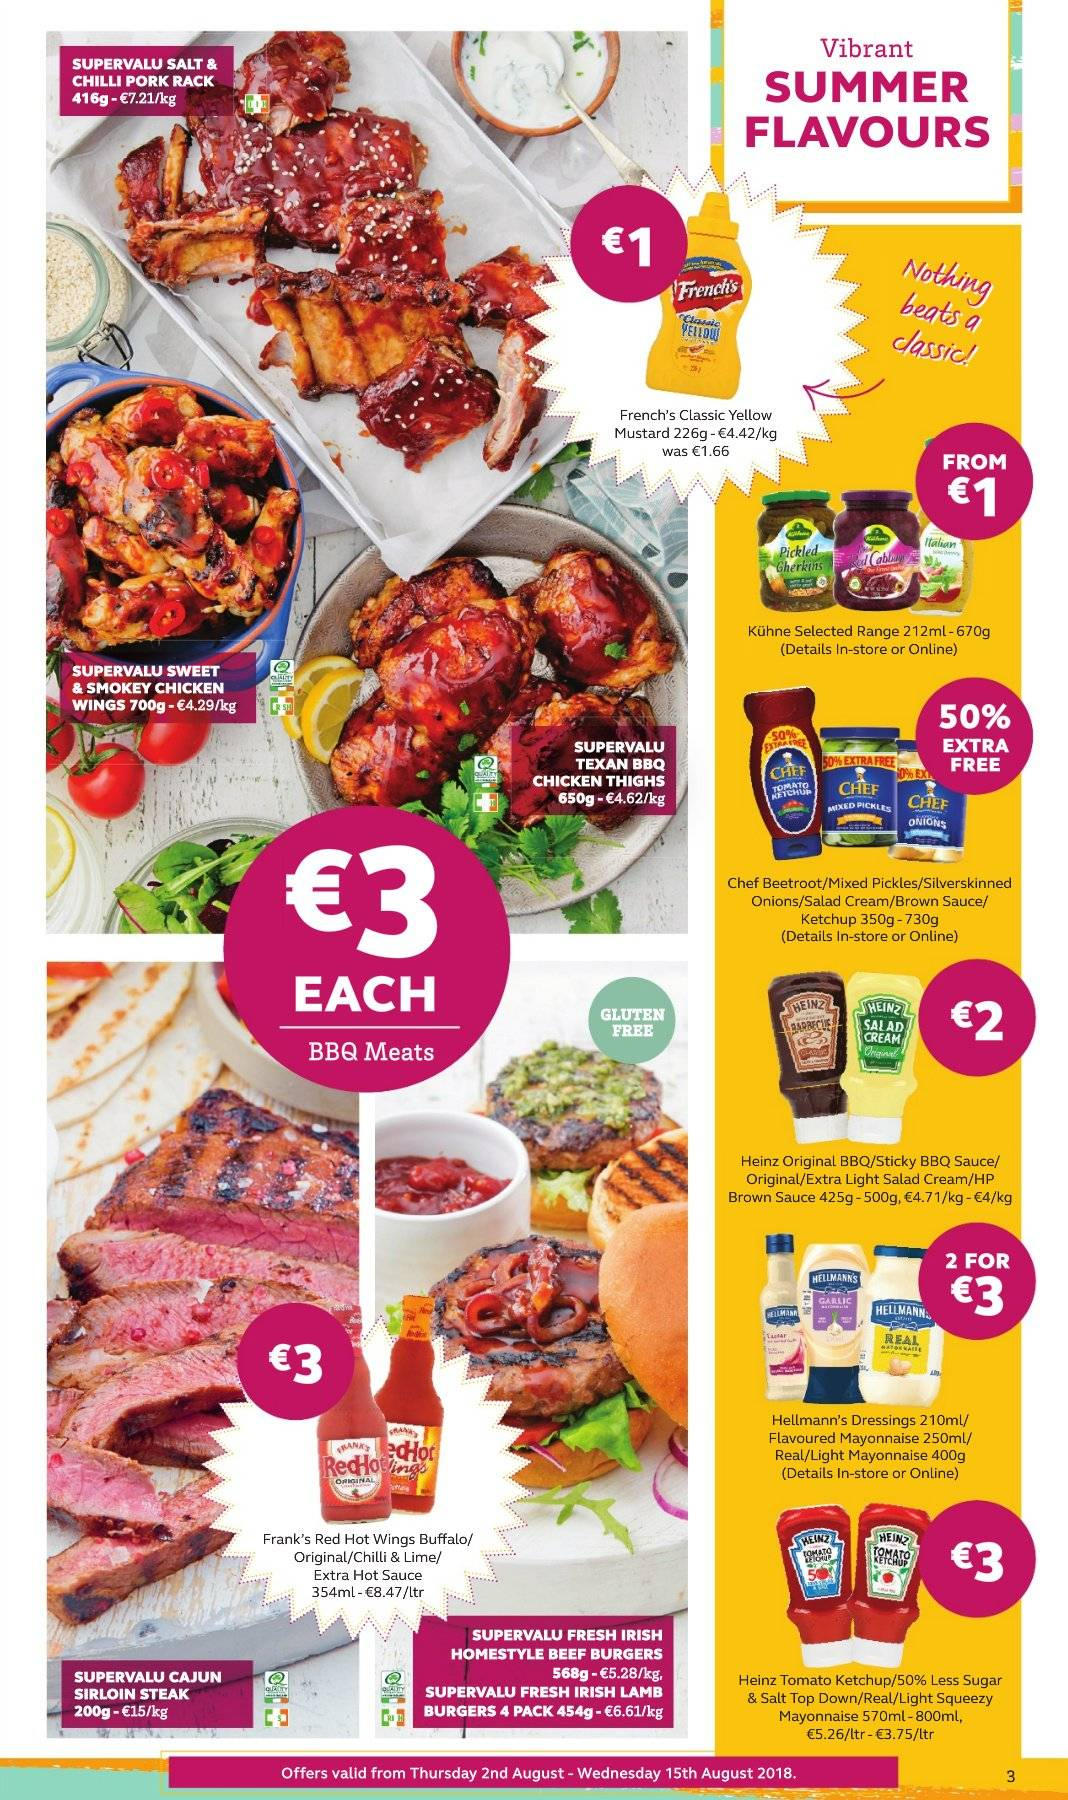 SuperValu offer  - 2.8.2018 - 15.8.2018 - Sales products - onion, pickles, beetroot juice, hamburger, sauce, beef burger, salad cream, Hellmann's, chicken wings, Heinz, barbecue sauce, mustard, ketchup, brown sauce, chicken, chicken thighs, beef sirloin, steak, sirloin steak, lamb meat, lamb sirloin. Page 3.